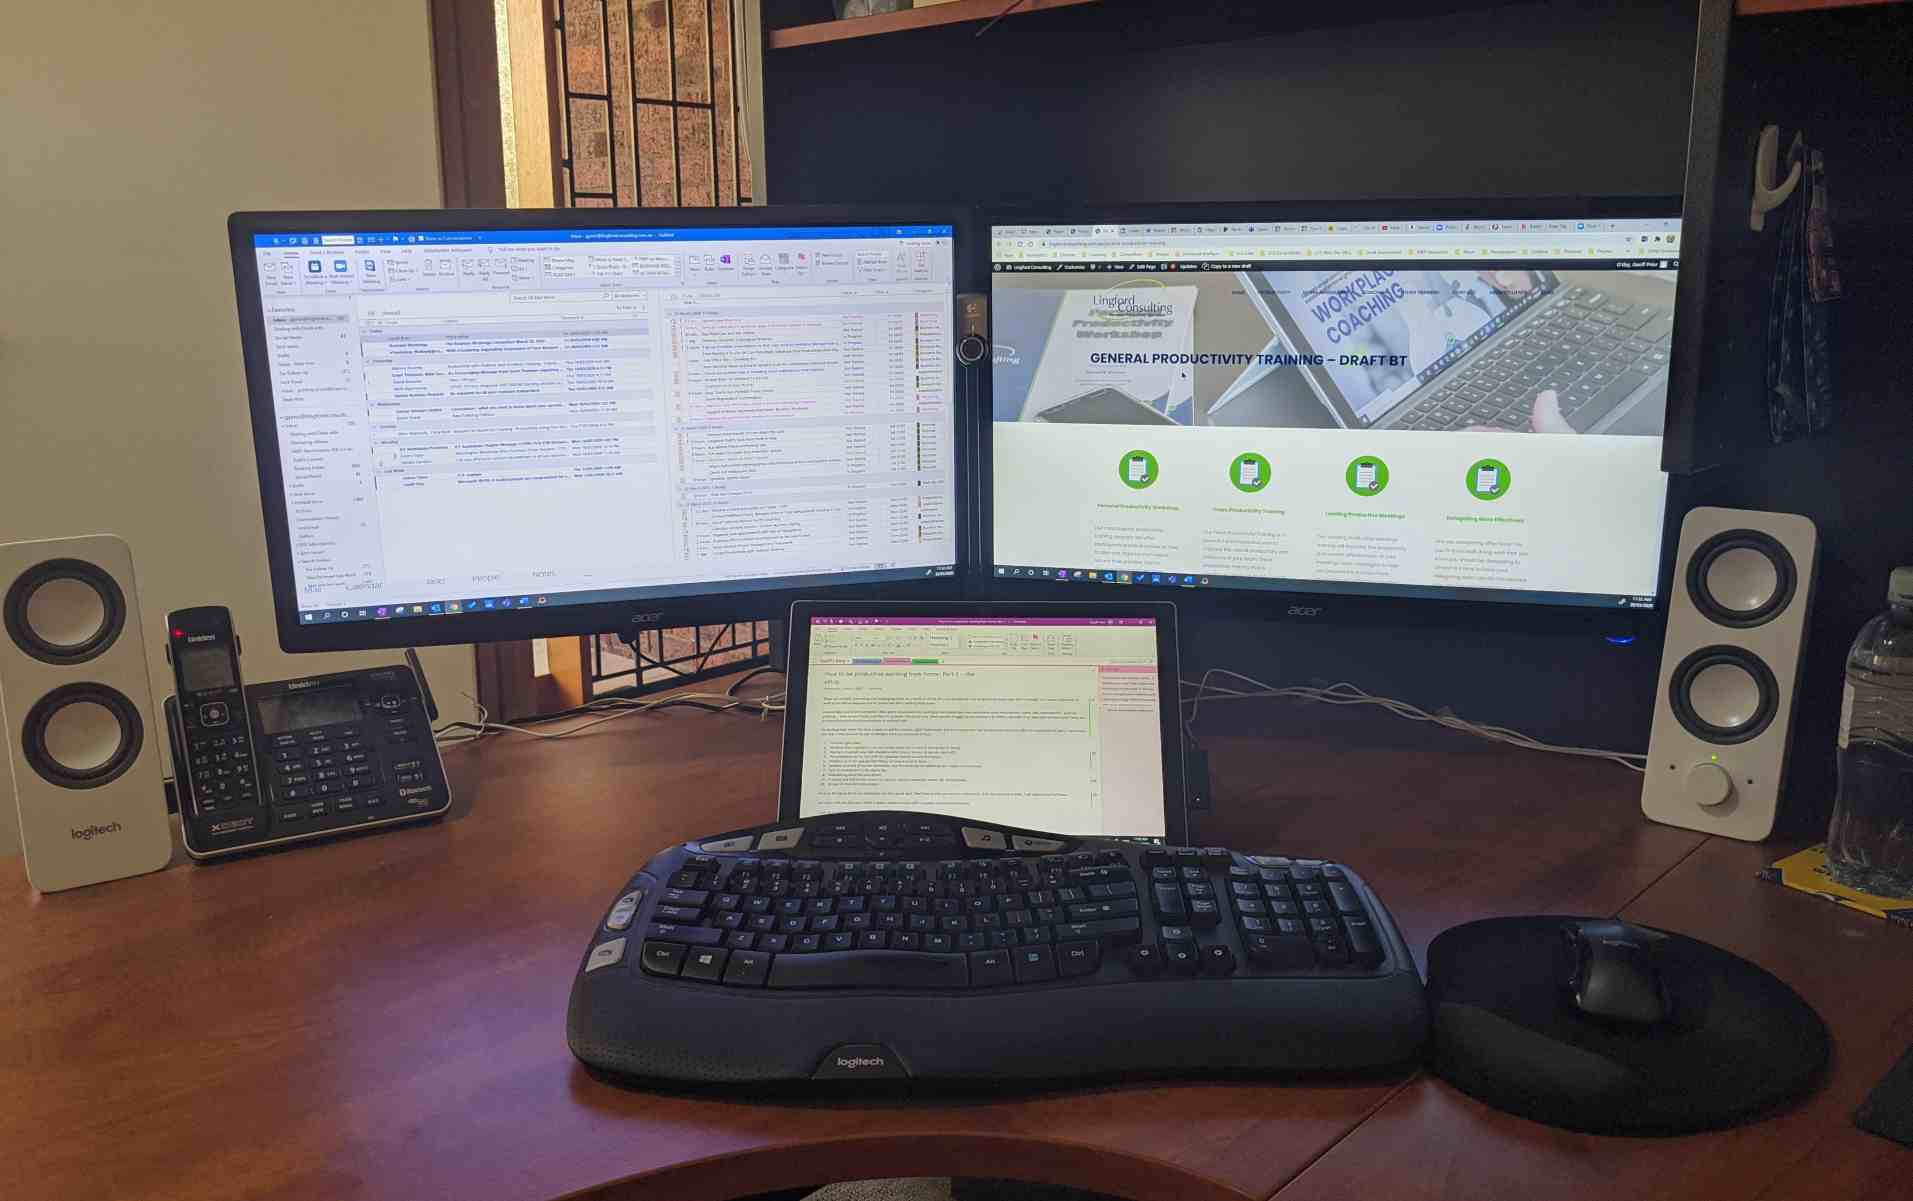 My home office 3 screen set up. Being productive working from home